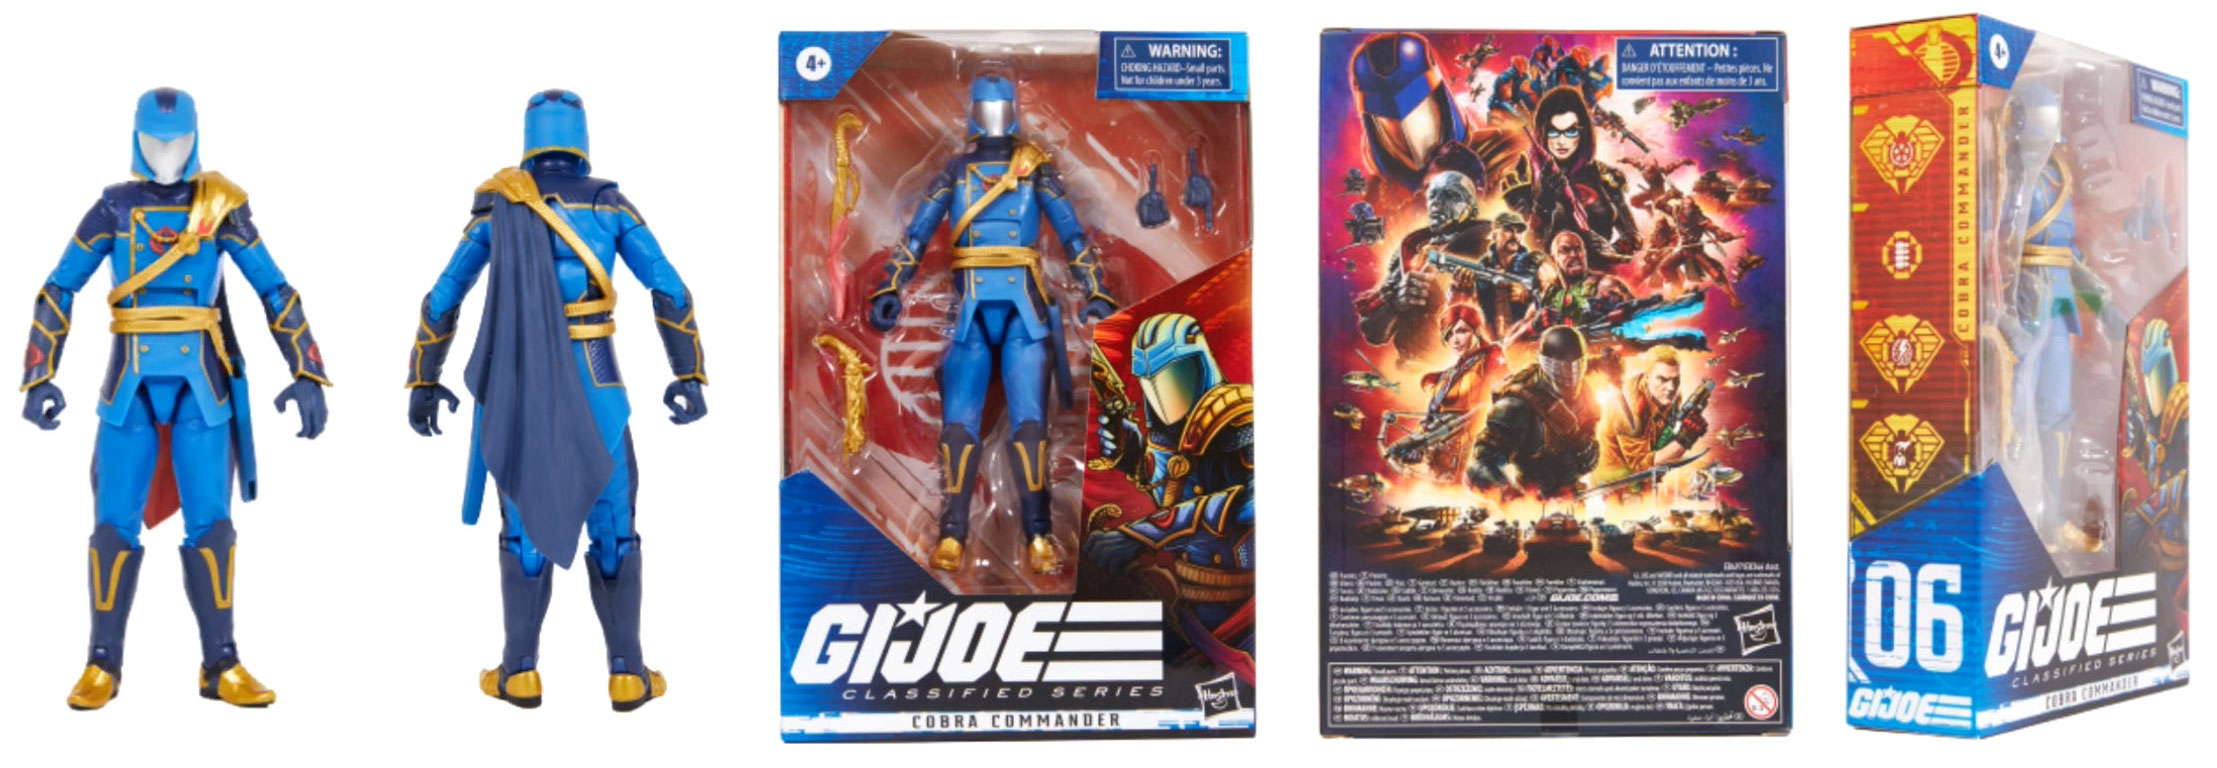 cobra-commander-ntwrk-gi-joe-classified-action-figure-box-packaging